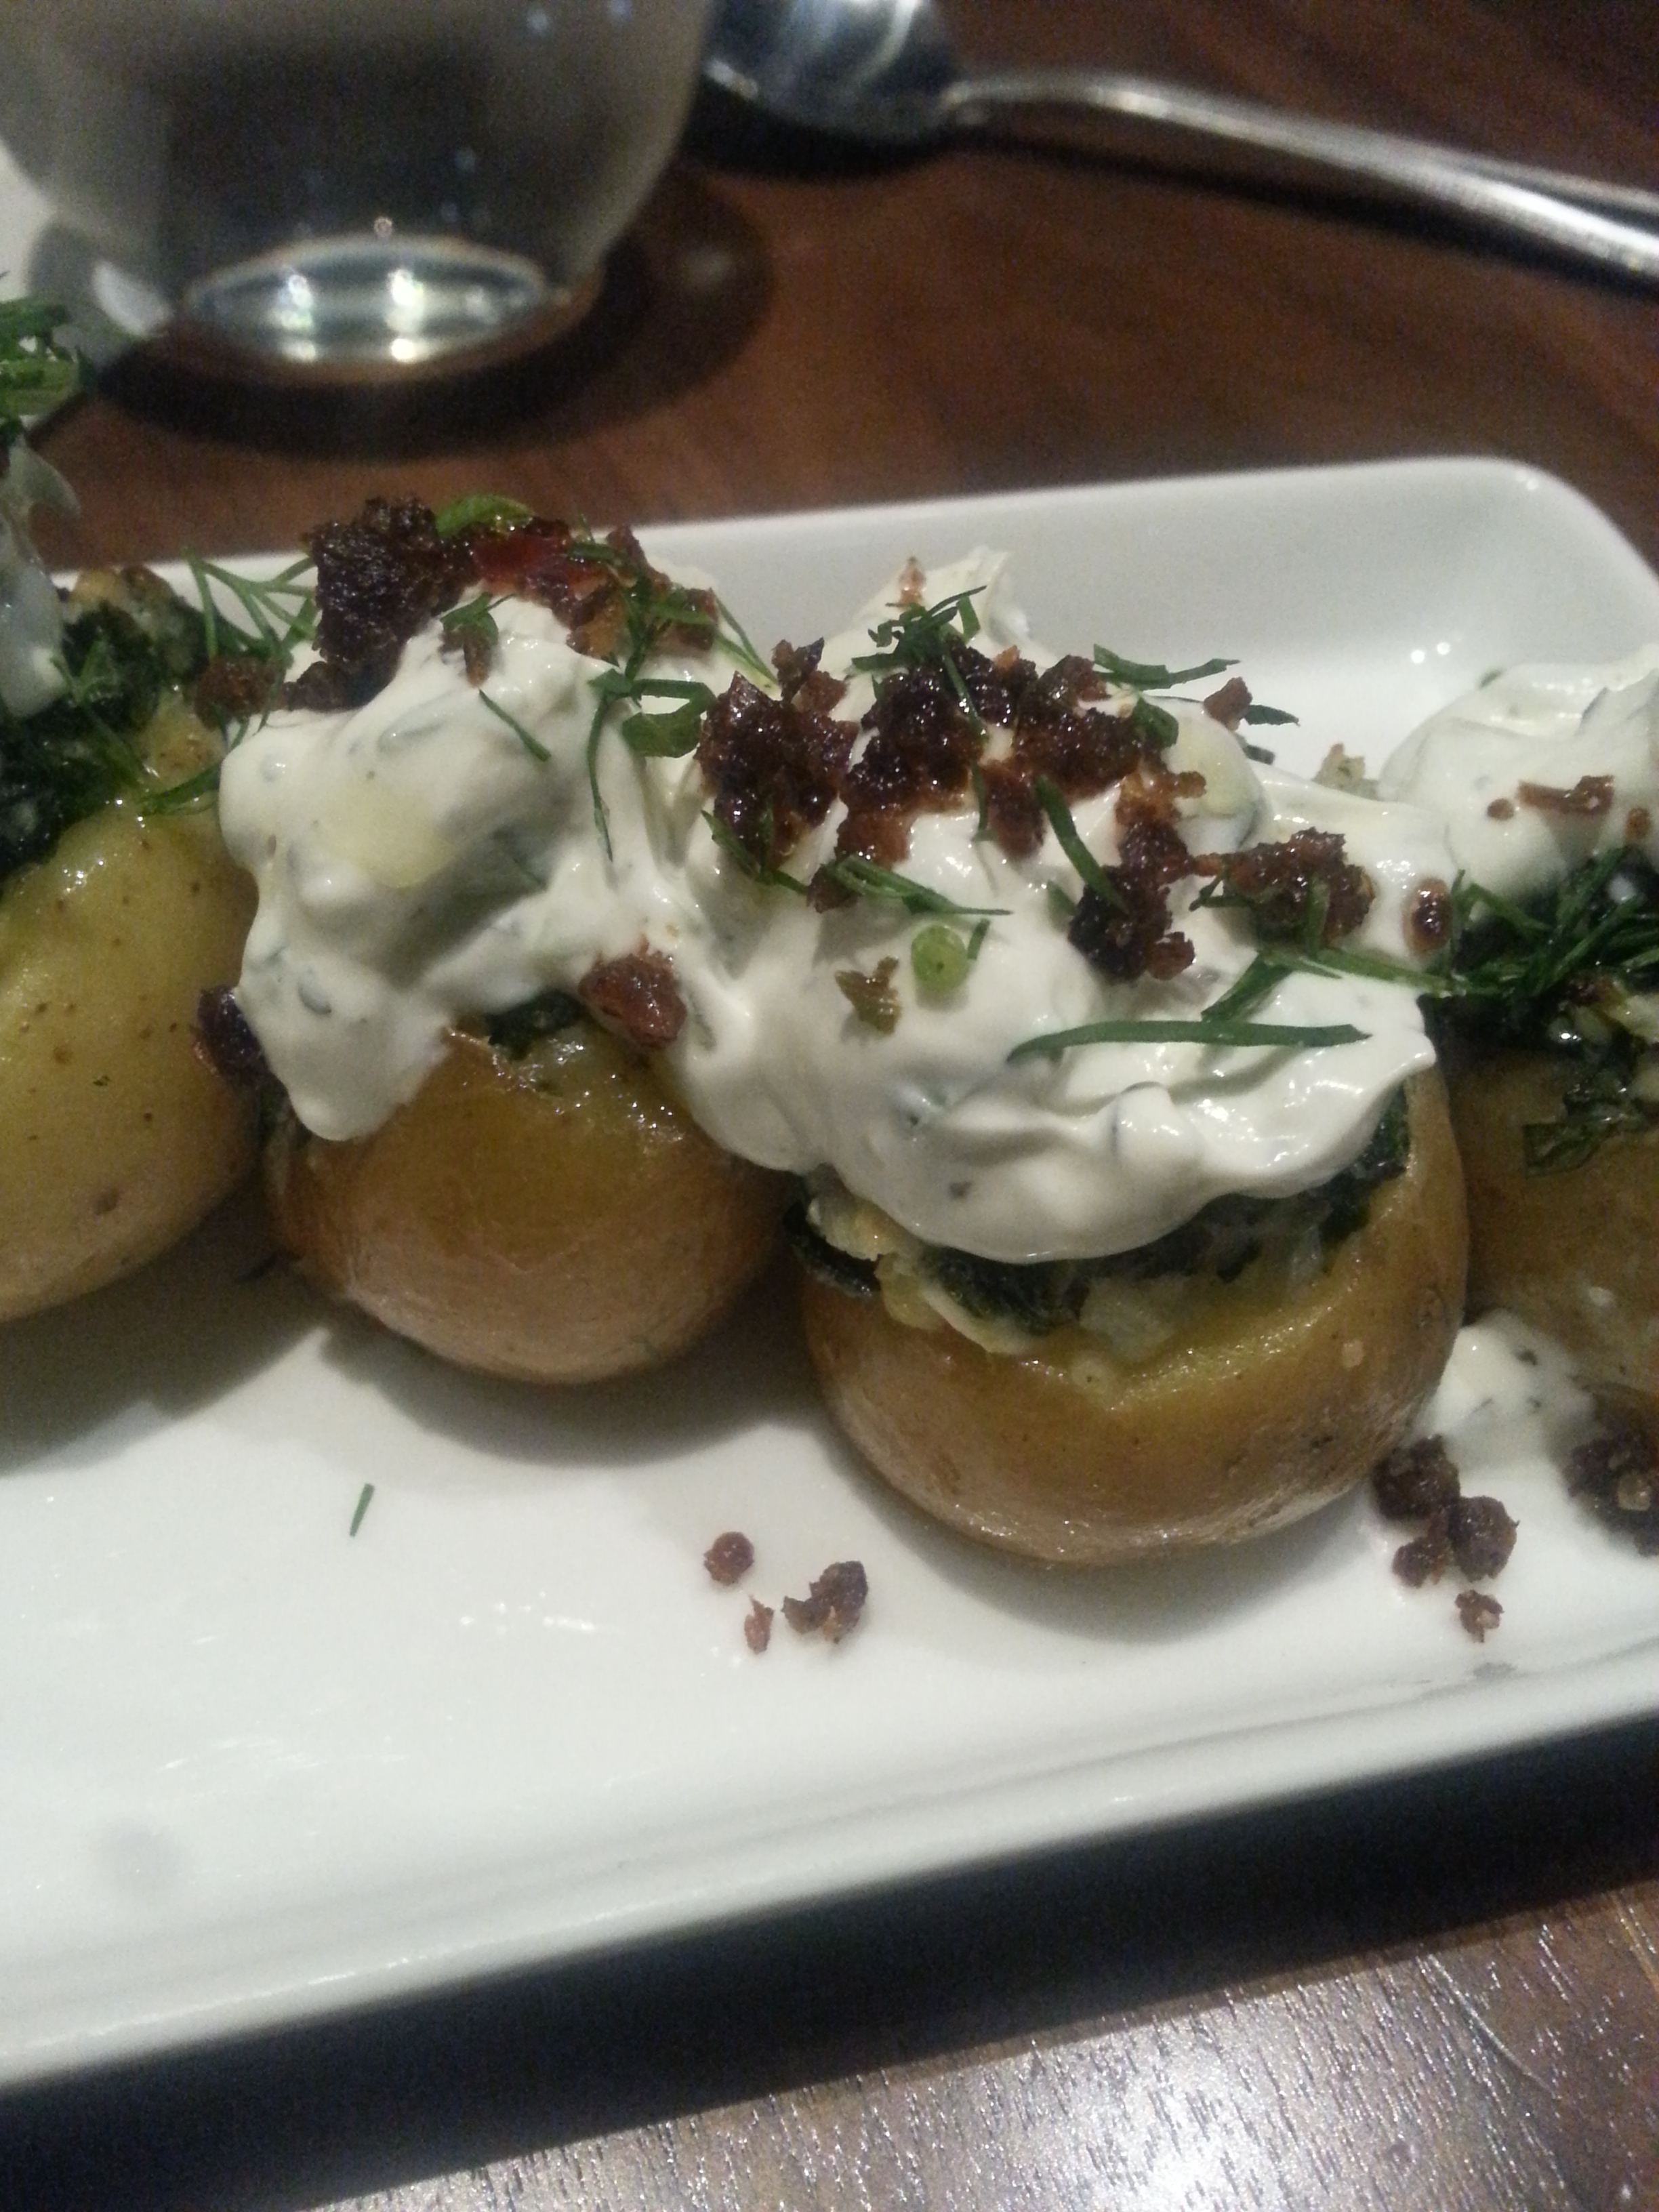 A Greek baked potato if you will.